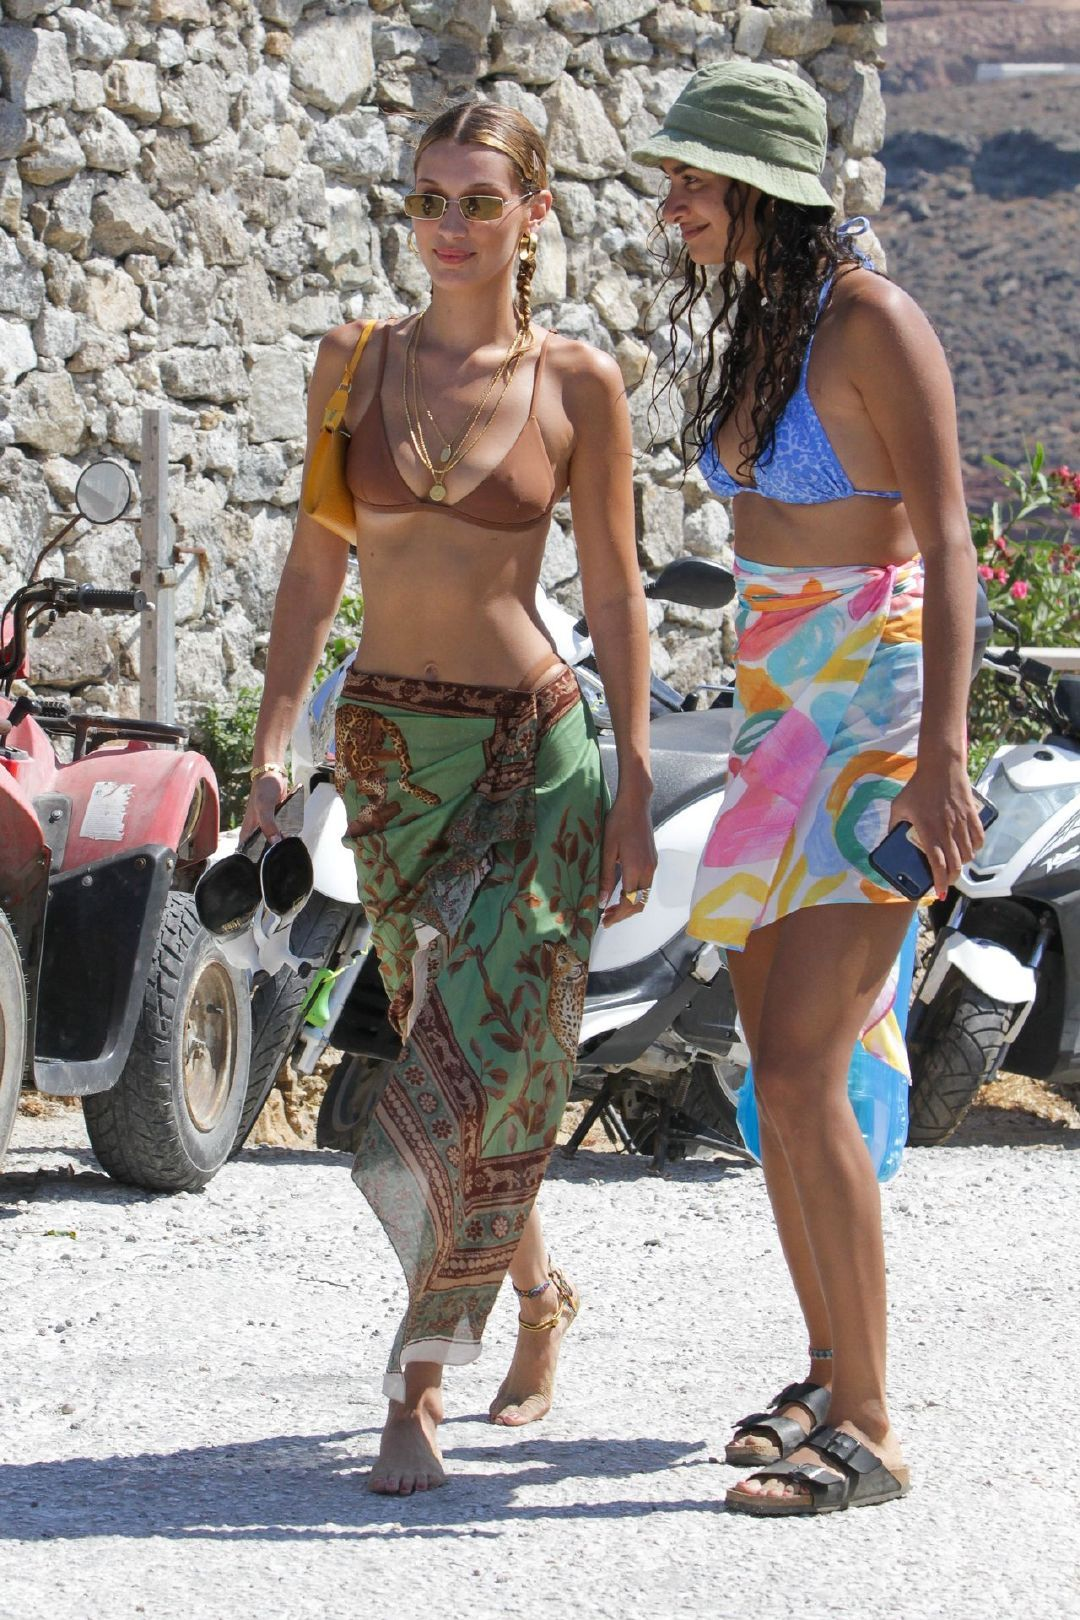 Pin By Eugenia On Dolce Vita With Images Skimpy Bikinis Fashion Hadid Style